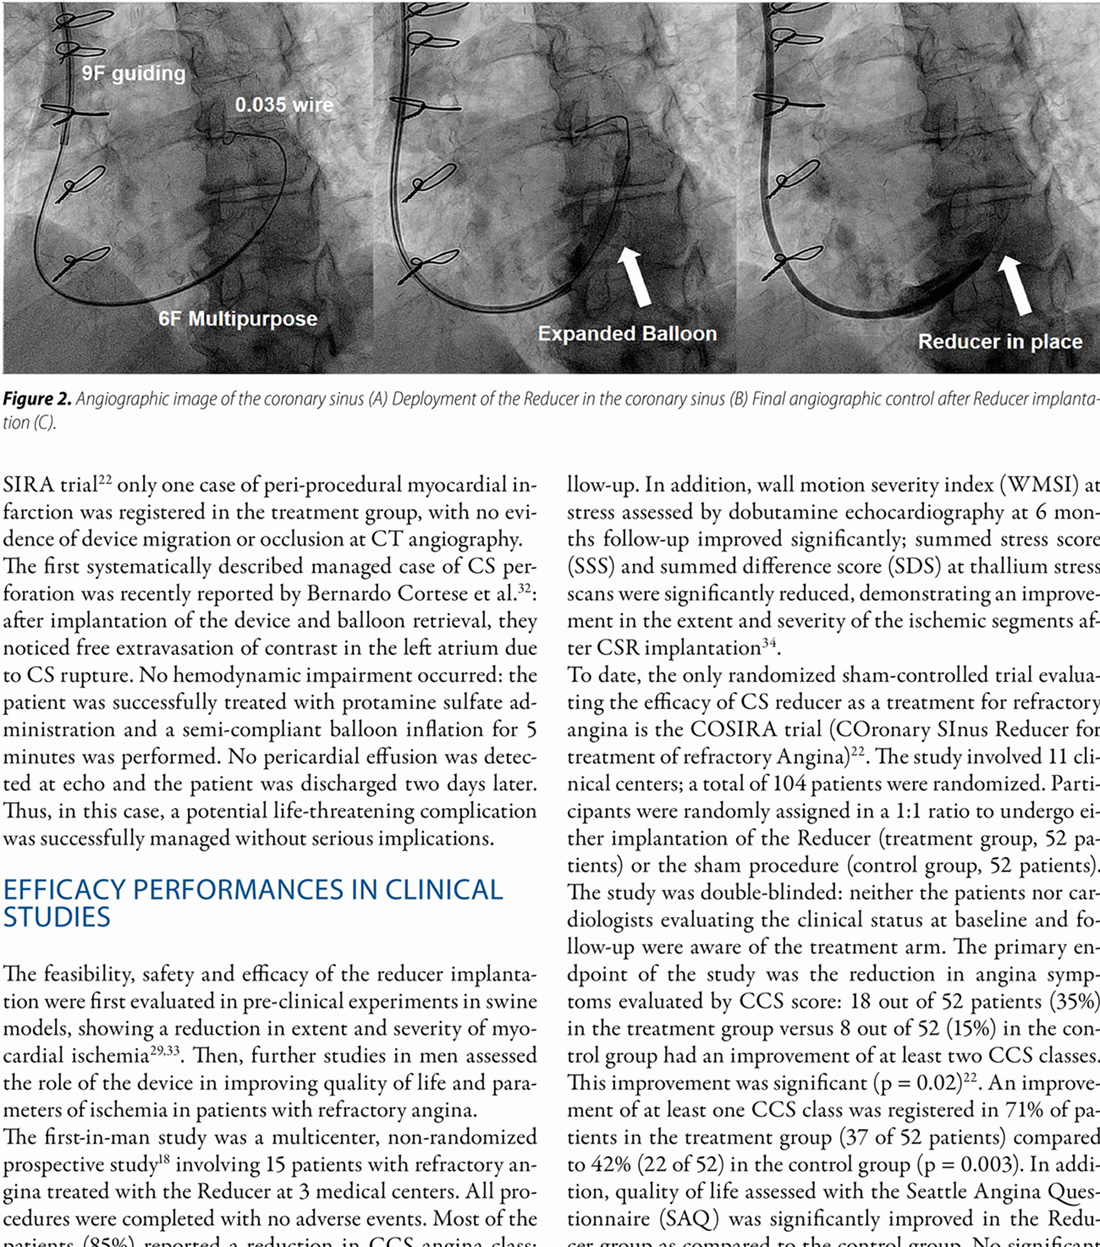 "The coronary sinus reducer: a validate option for ""no-option"" labeled patients. Clinical evidences and new perspectives"